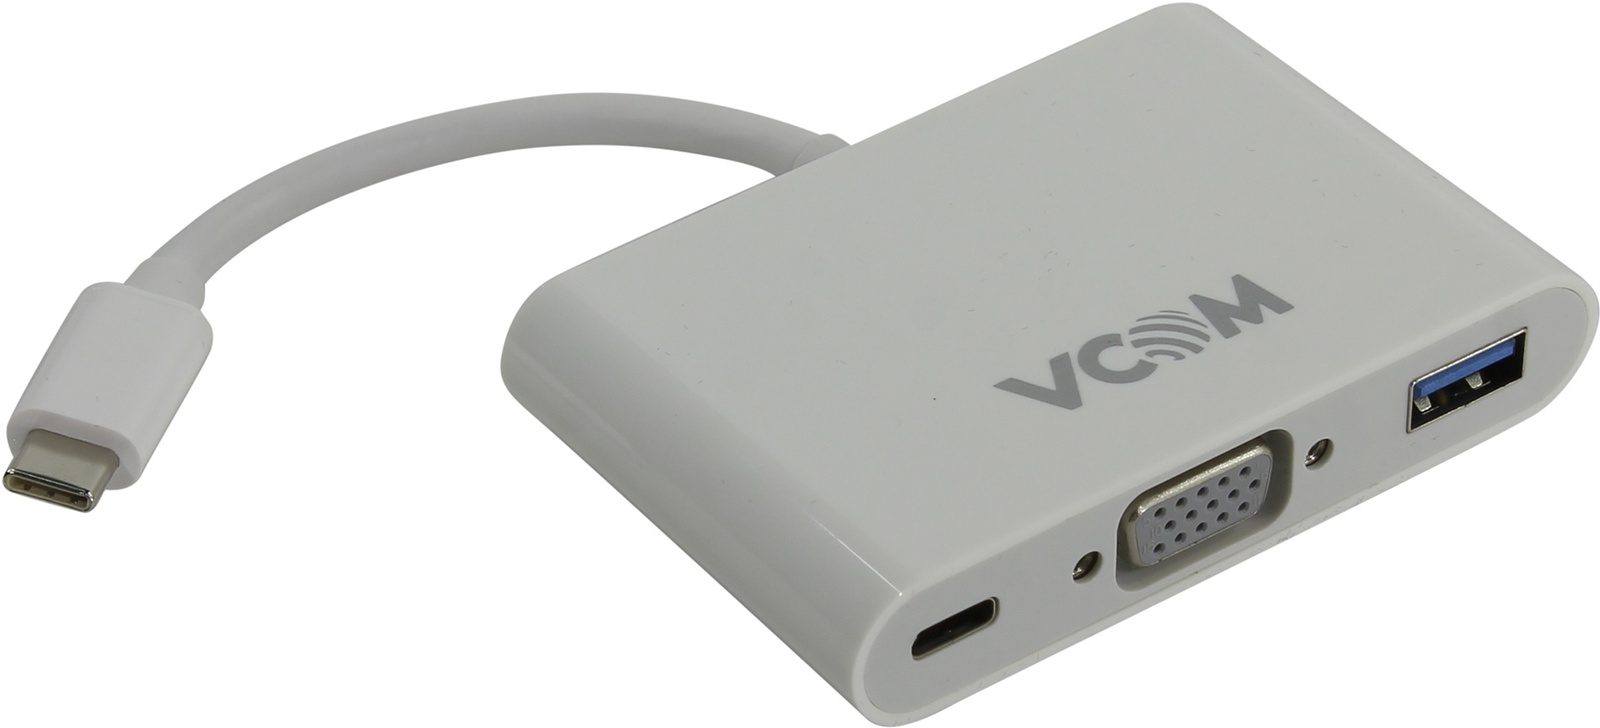 Кабель VCOM USB 3.1 Type-CM → VGA F USB3.0 F TypeC F, CU426, белый type c to vga usb 3 0 usb c 3 in 1 converter